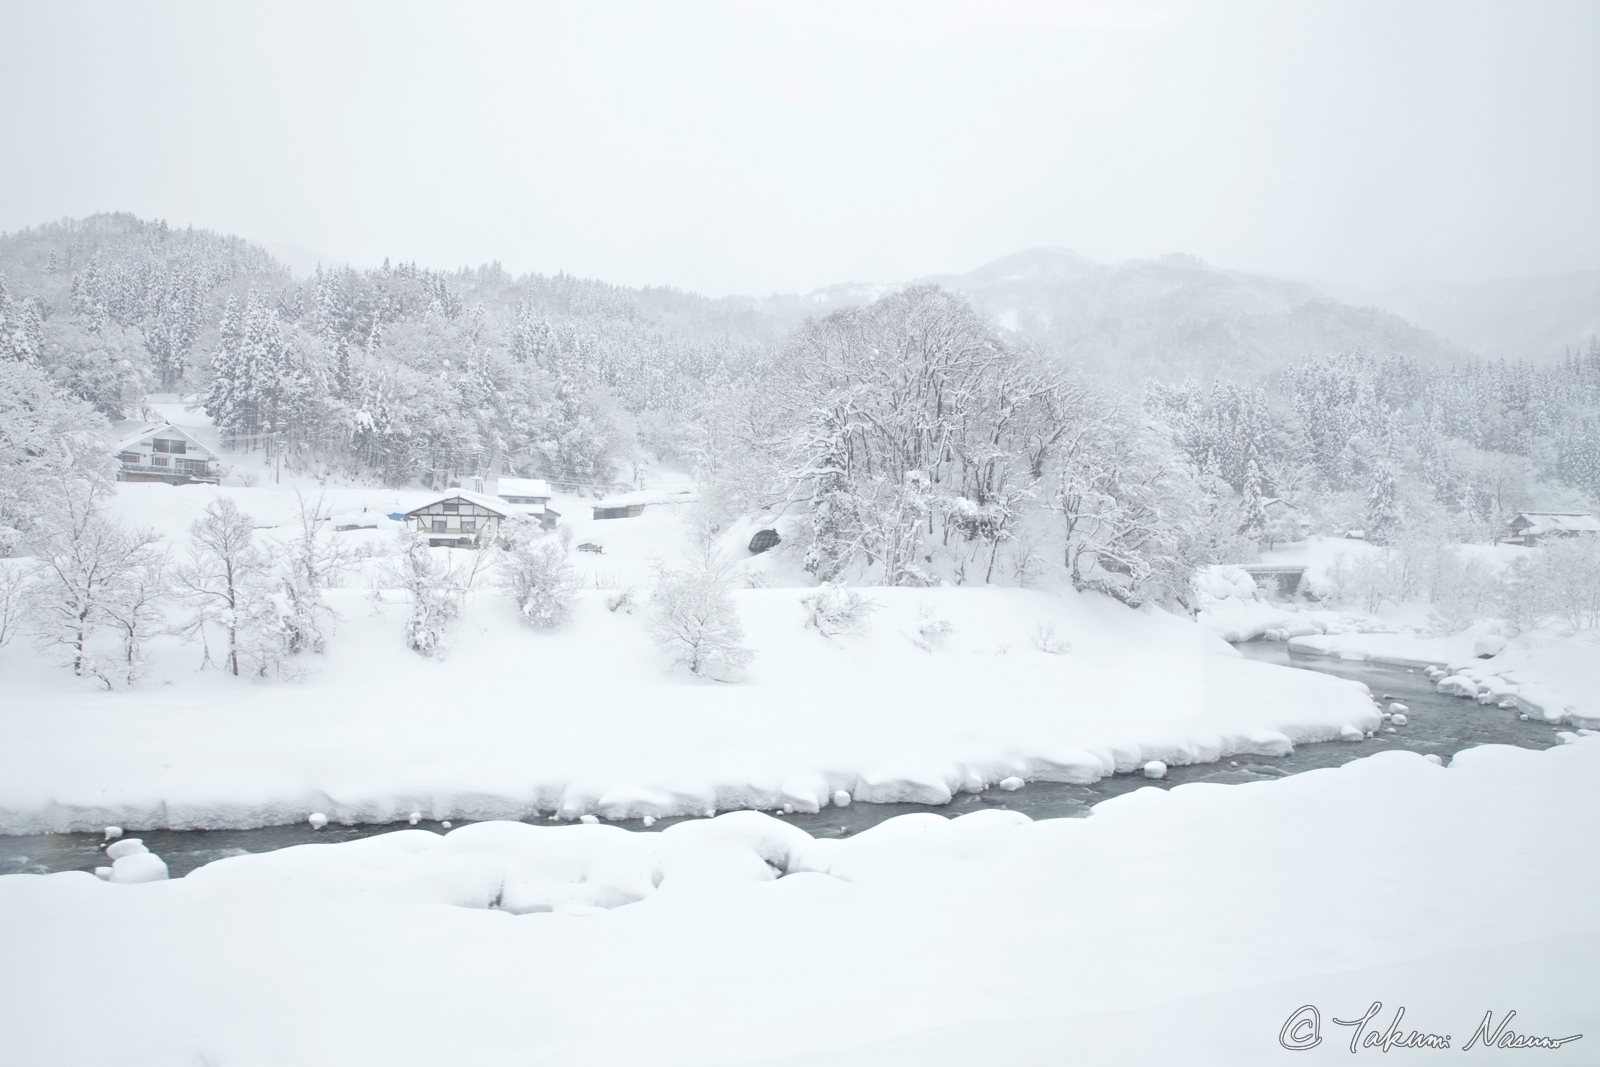 Otari Village - Snowy Winding Hime River